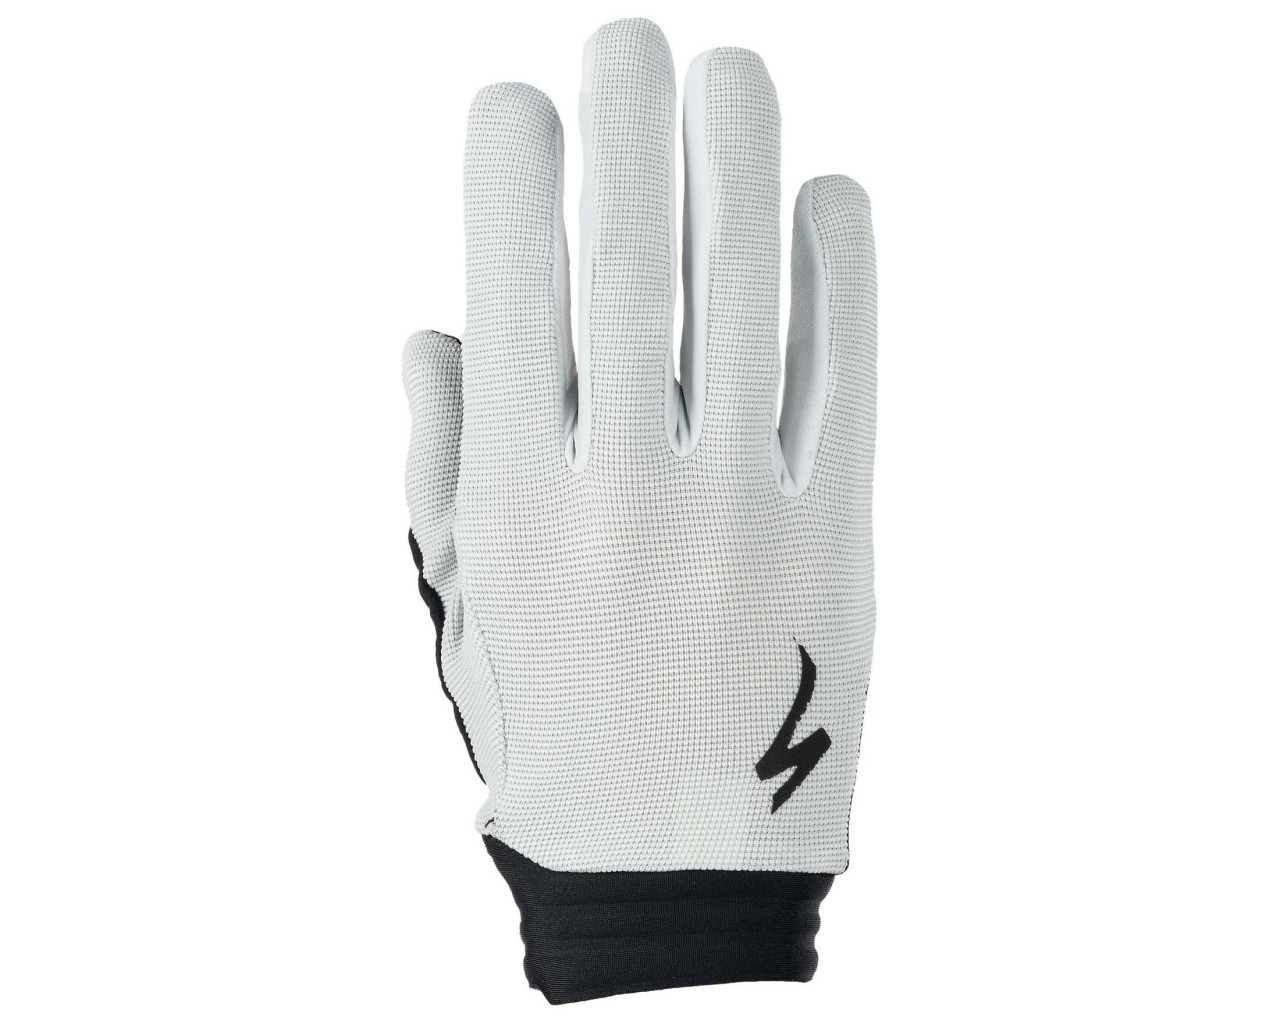 Specialized Trail Handschuhe langfinger | dove grey